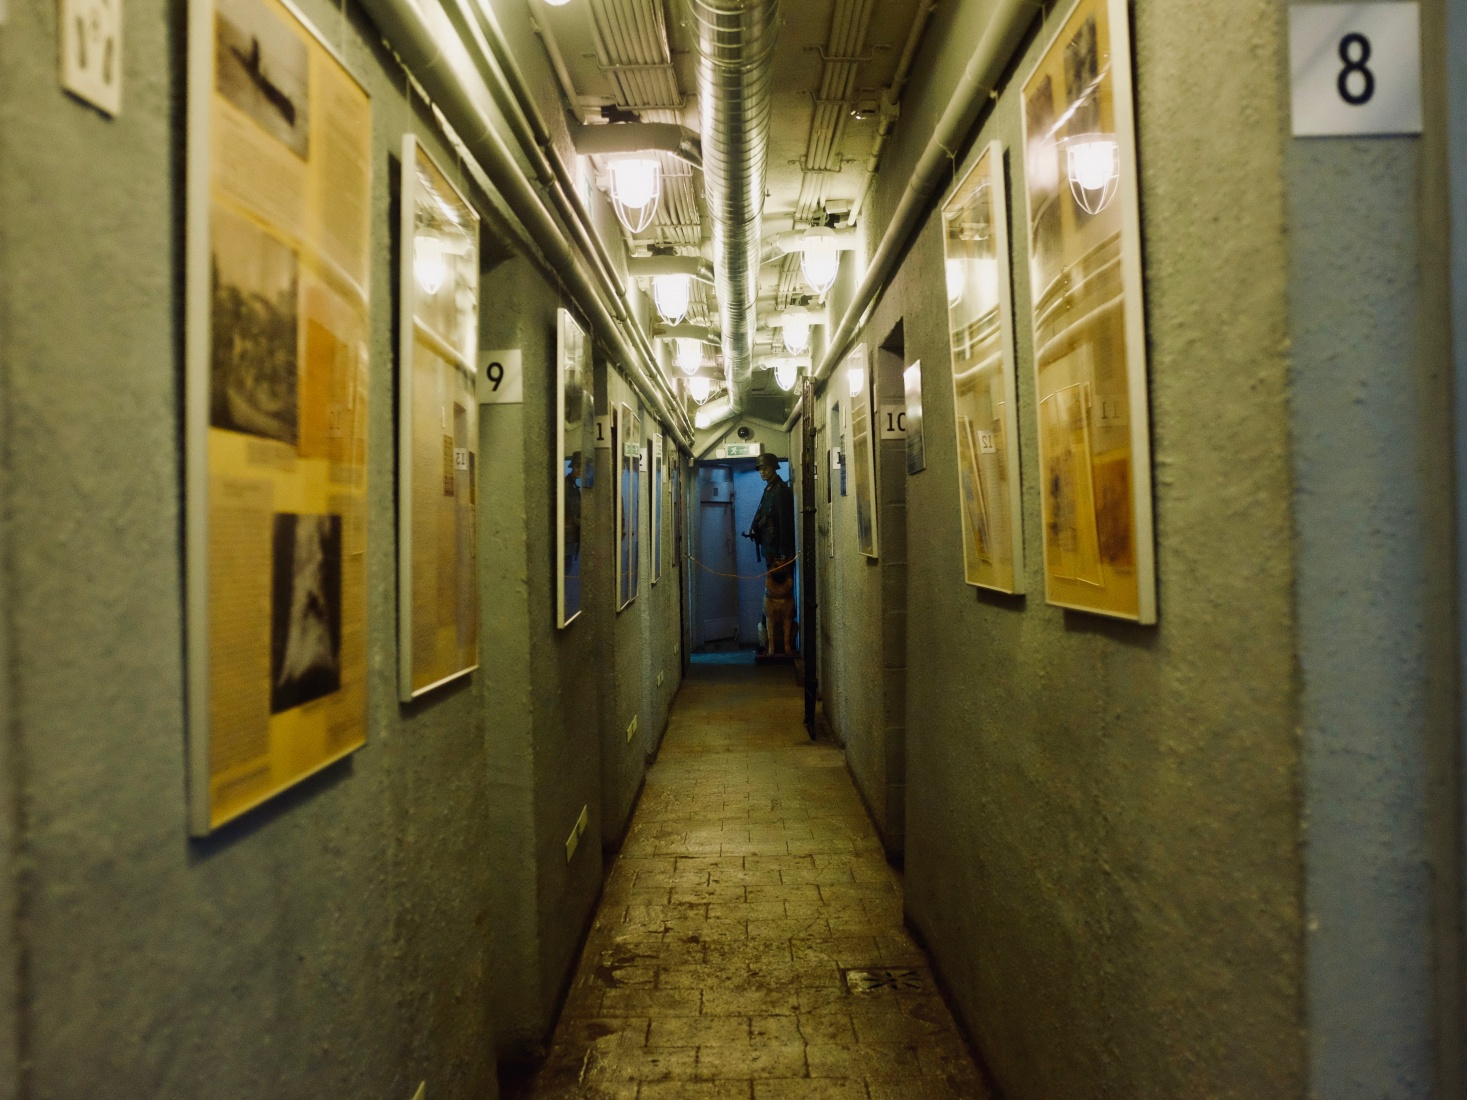 Dark, narrow corridor of former German WWII command bunker, now a museum in Kaliningrad, Russia. Where Russians and Germans met in April 1945 to negotiate the surrender of the city, then Königsberg.